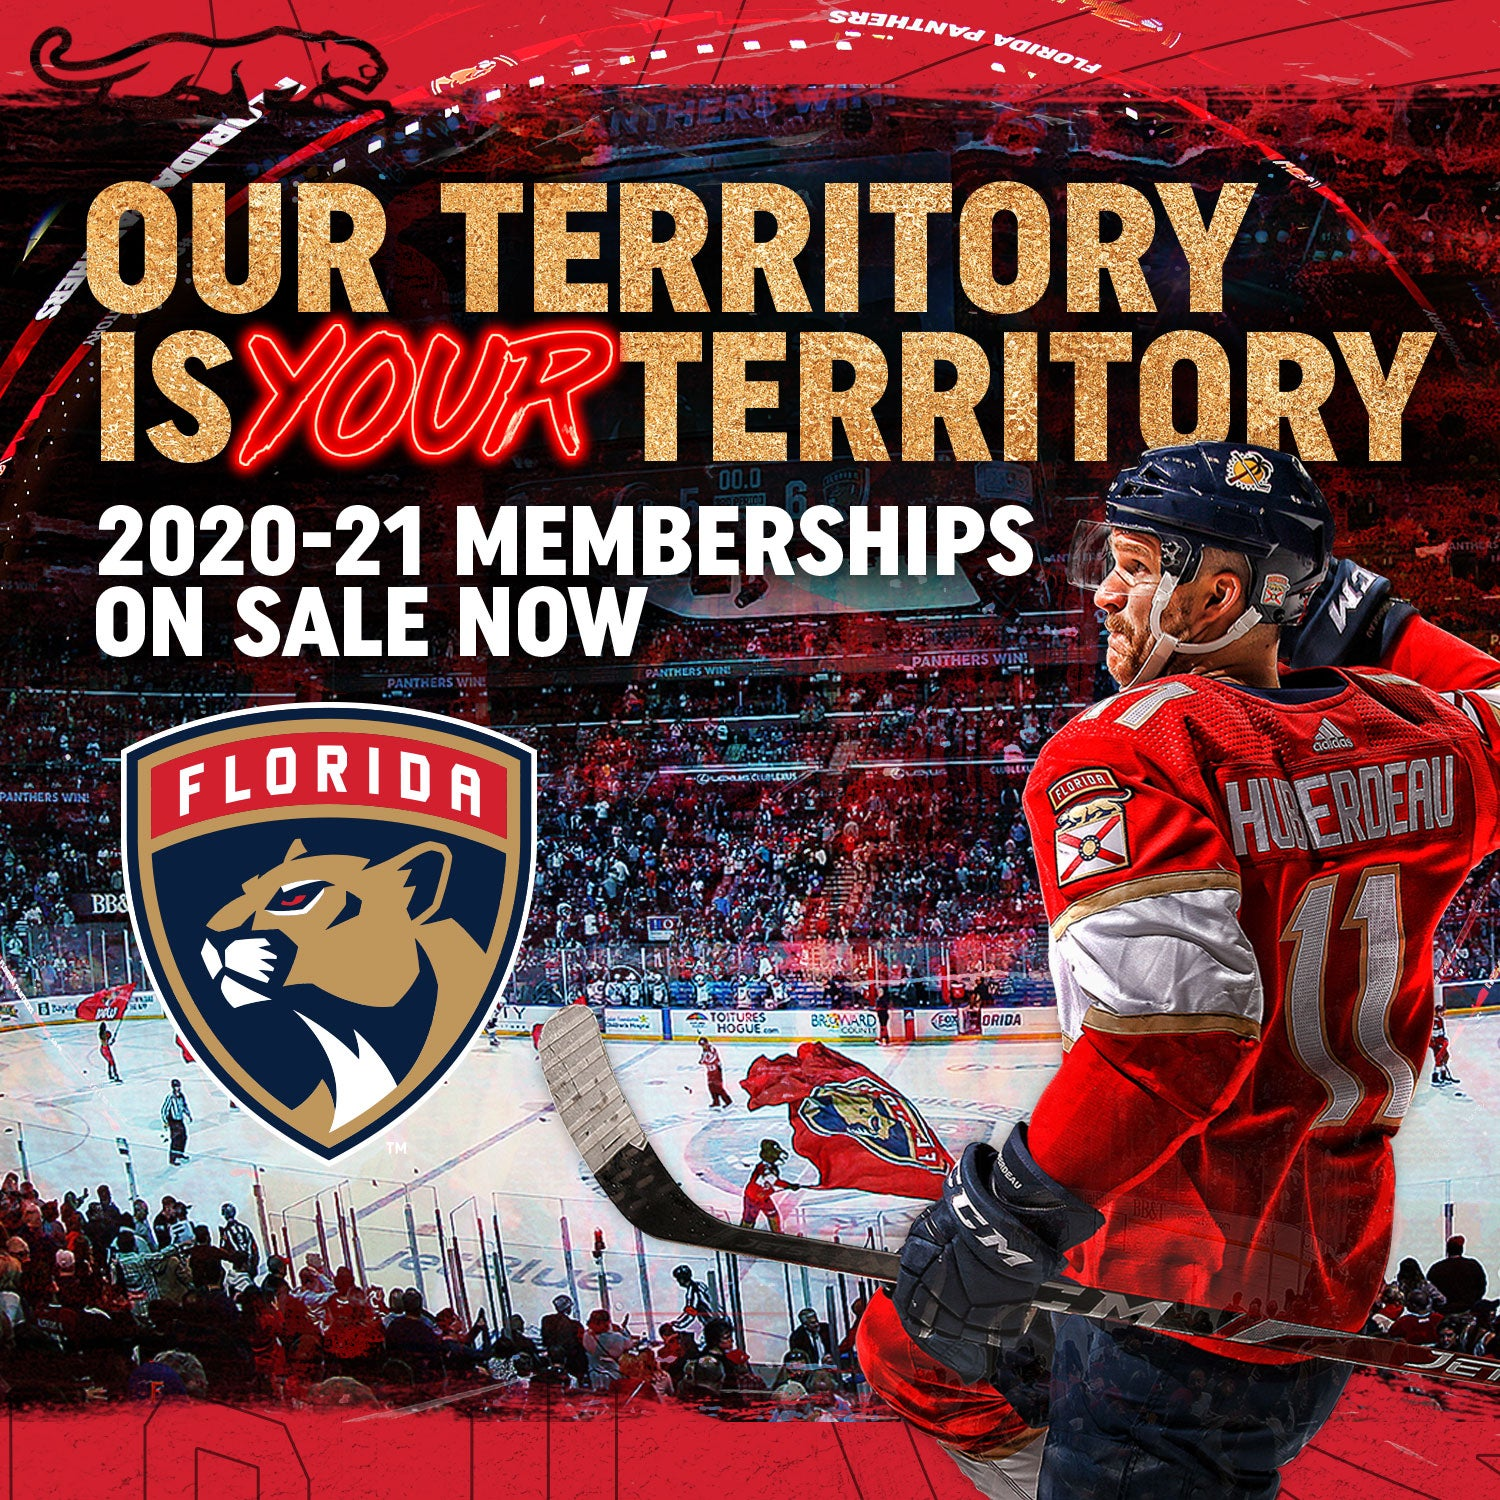 Florida Panthers Season Ticket Territory Memberships Available Now